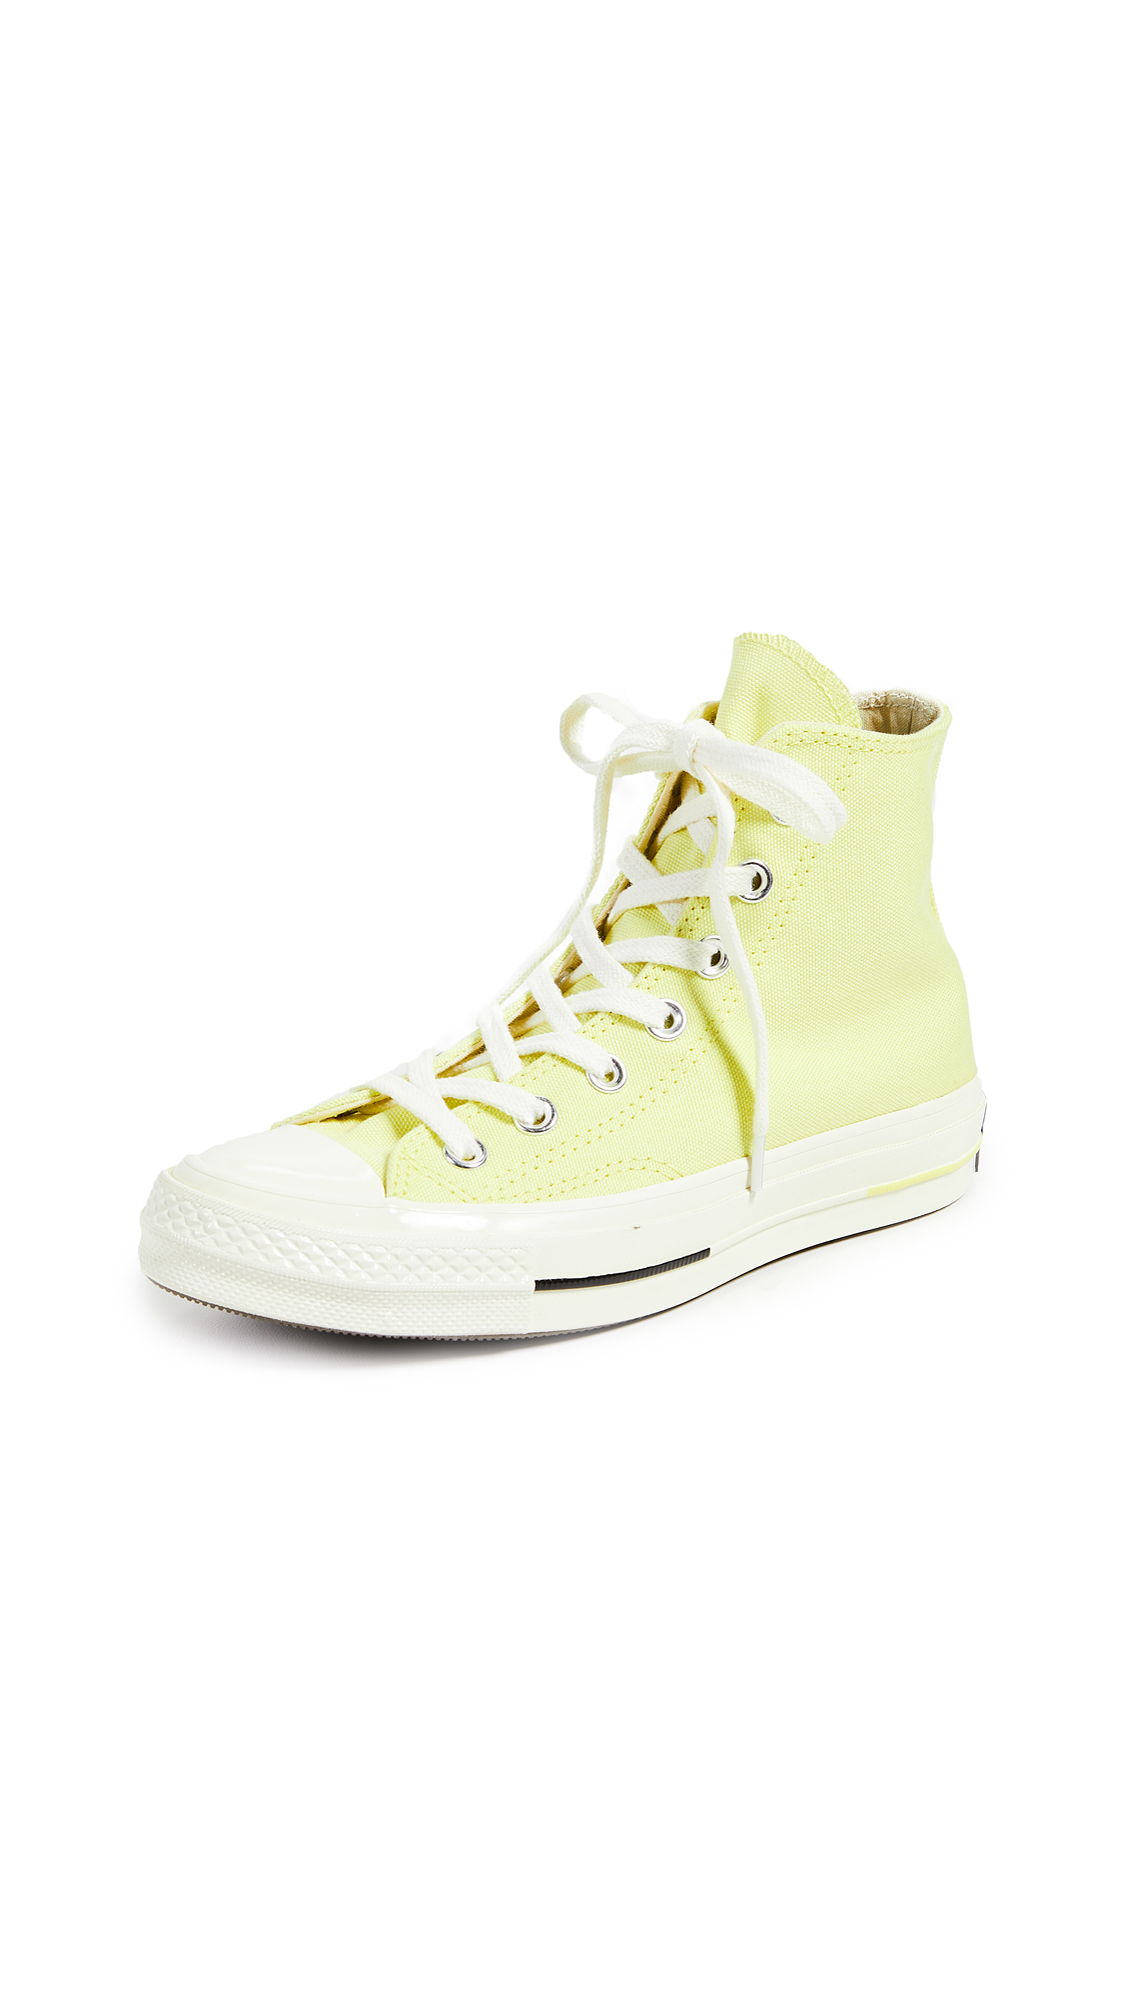 Converse Chuck Taylor All Star 70 High Top Sneakers - Light Zitron